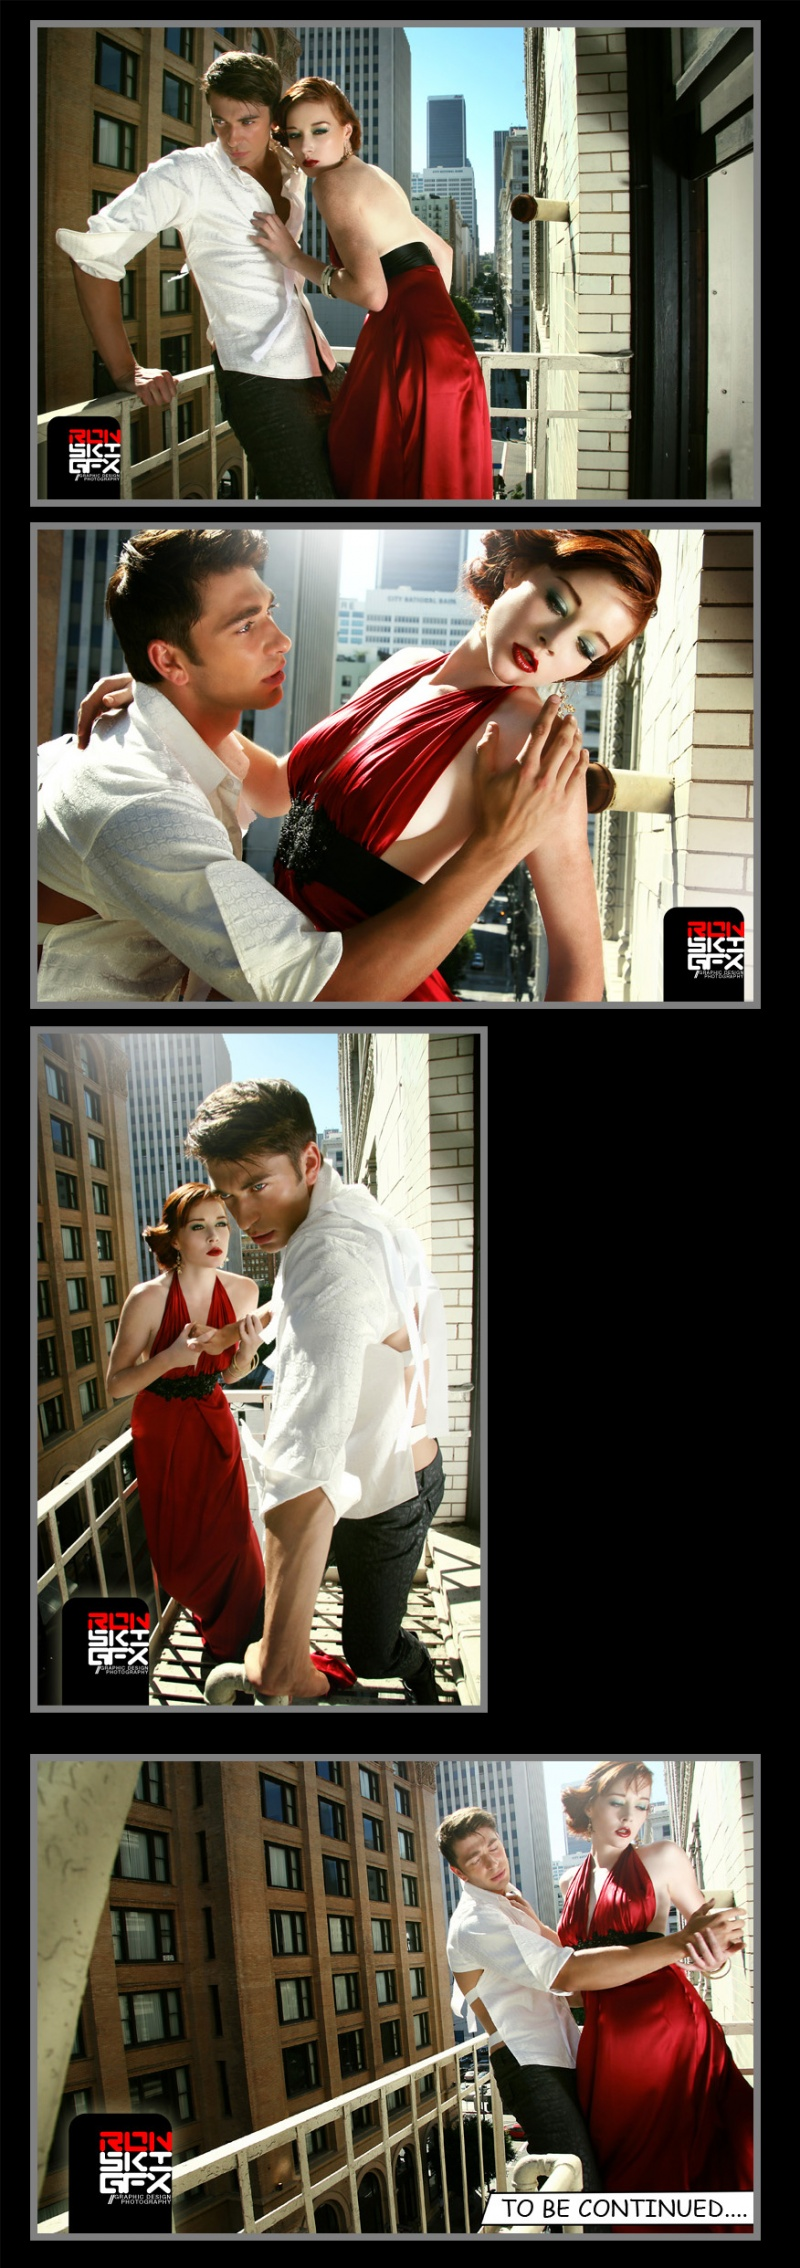 Male and Female model photo shoot of RON RonskiGFX CRUZ, Dragan and DominiqueCX in Downtown LA, makeup by Sharon Hawkey